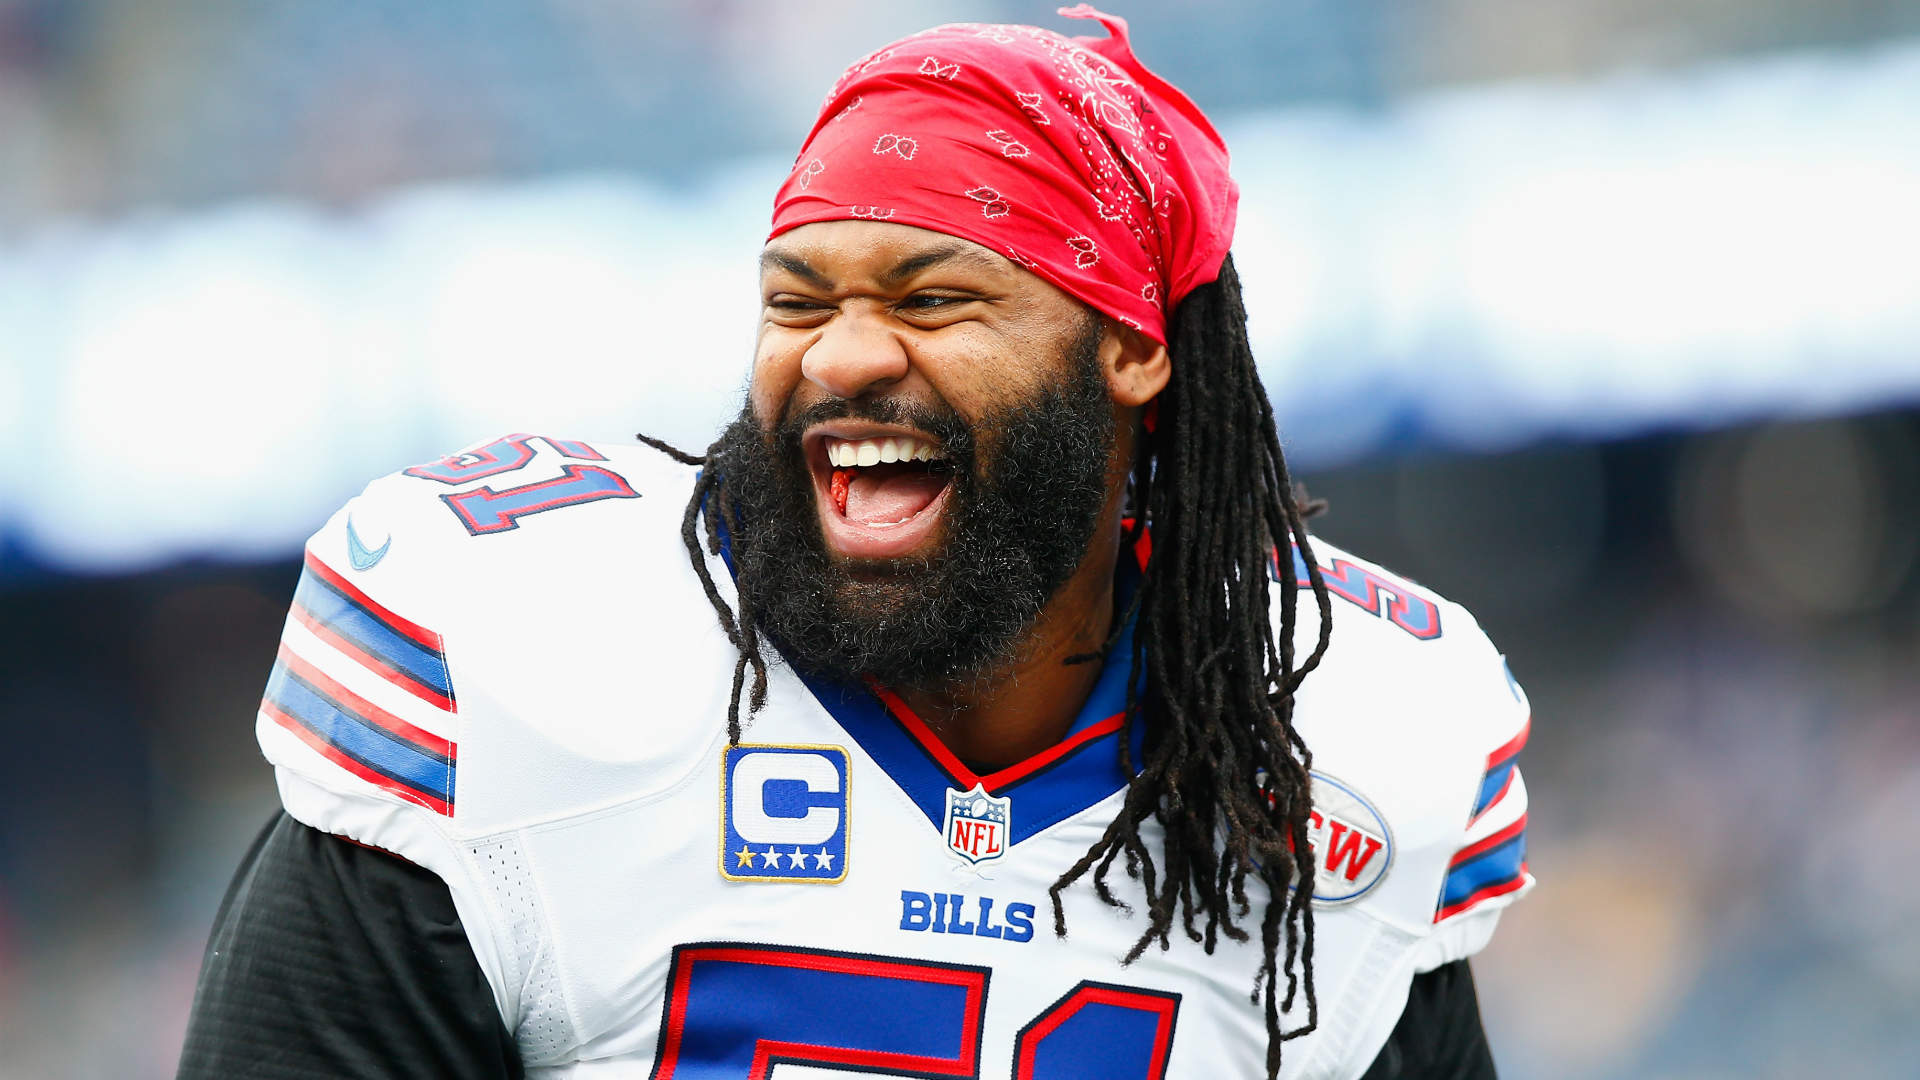 Brandon Spikes reaches plea deal, receives probation